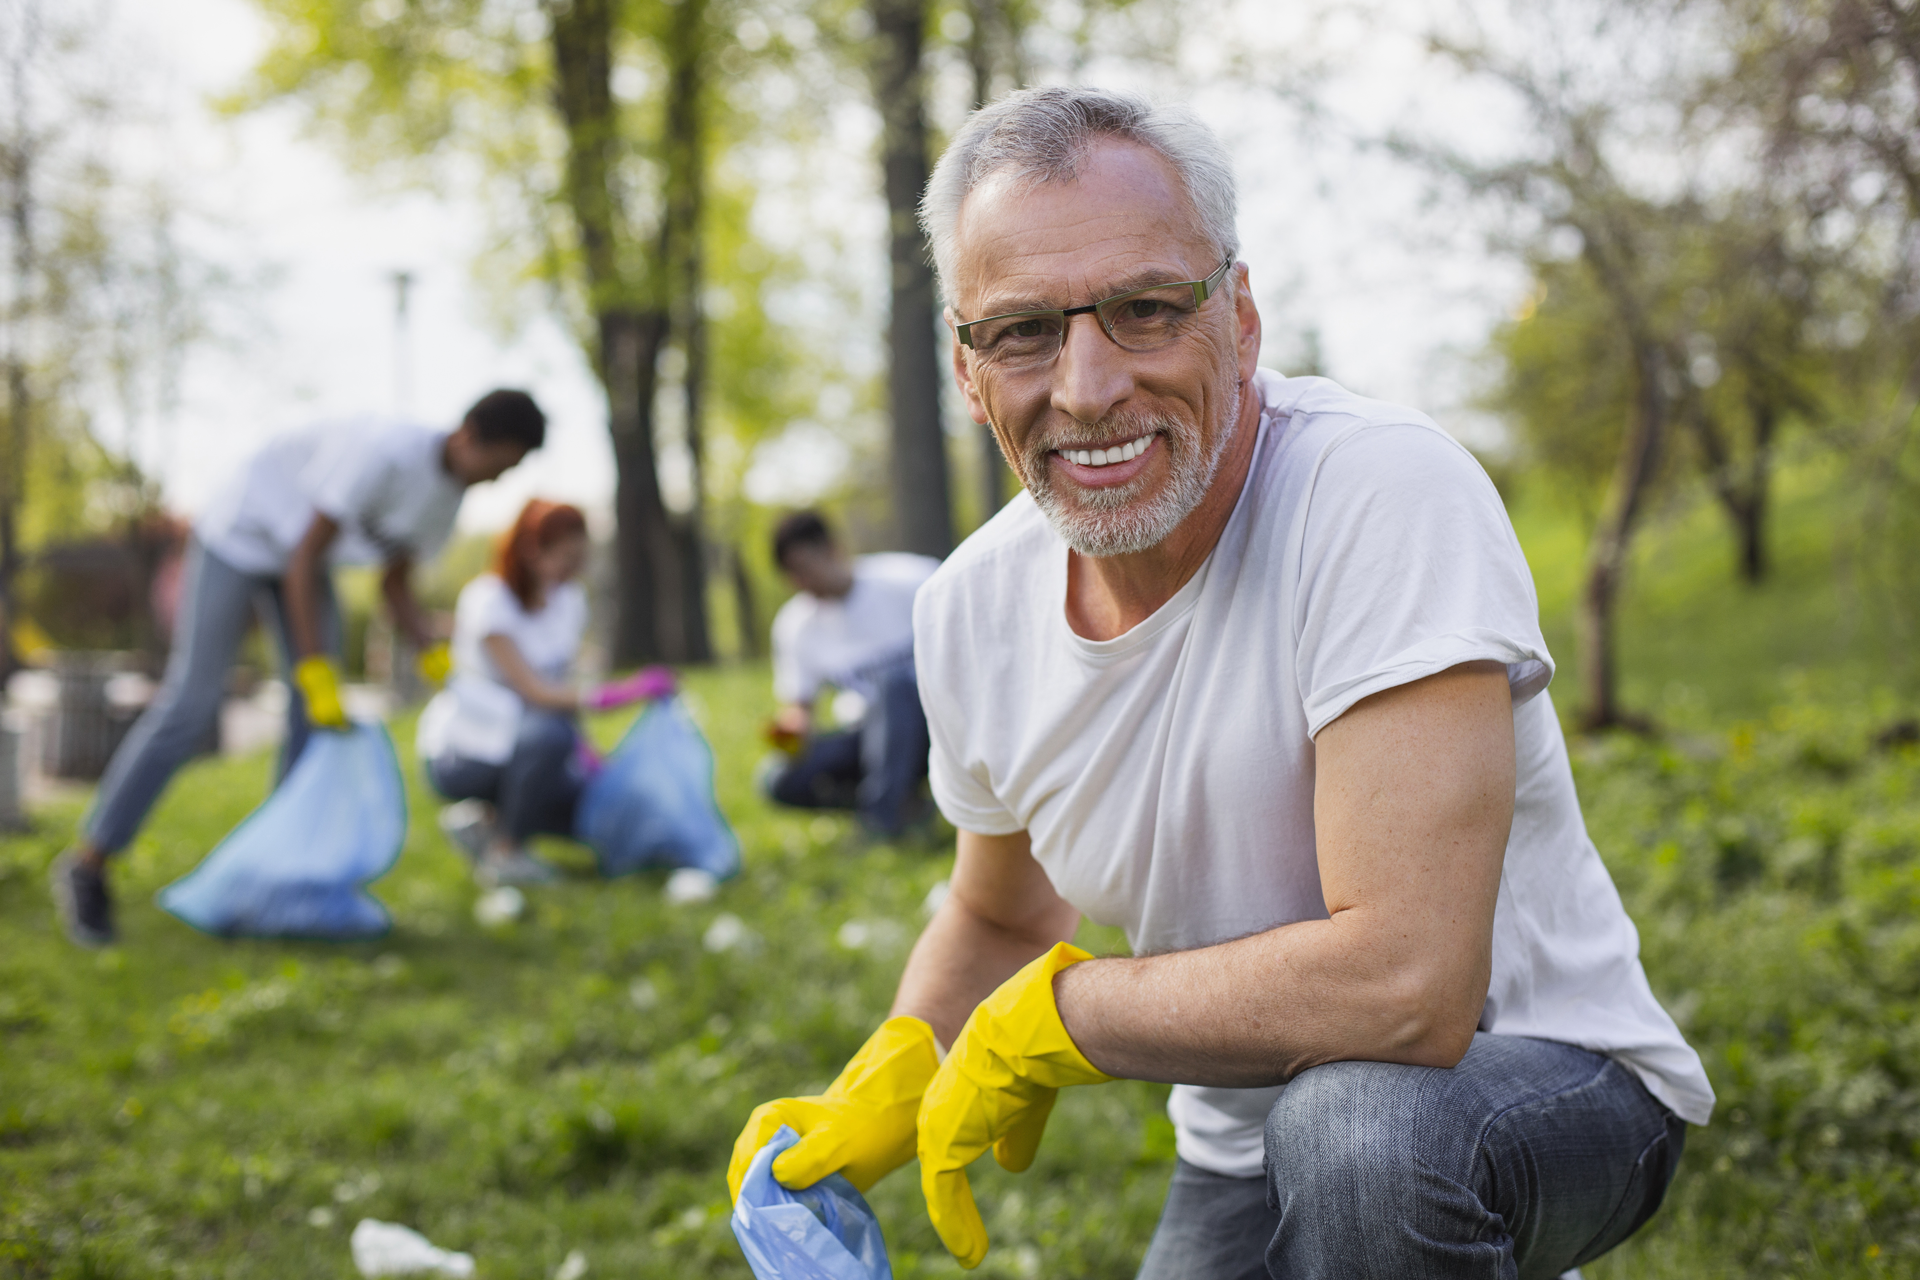 Middle aged man outside picking up trash volunteering